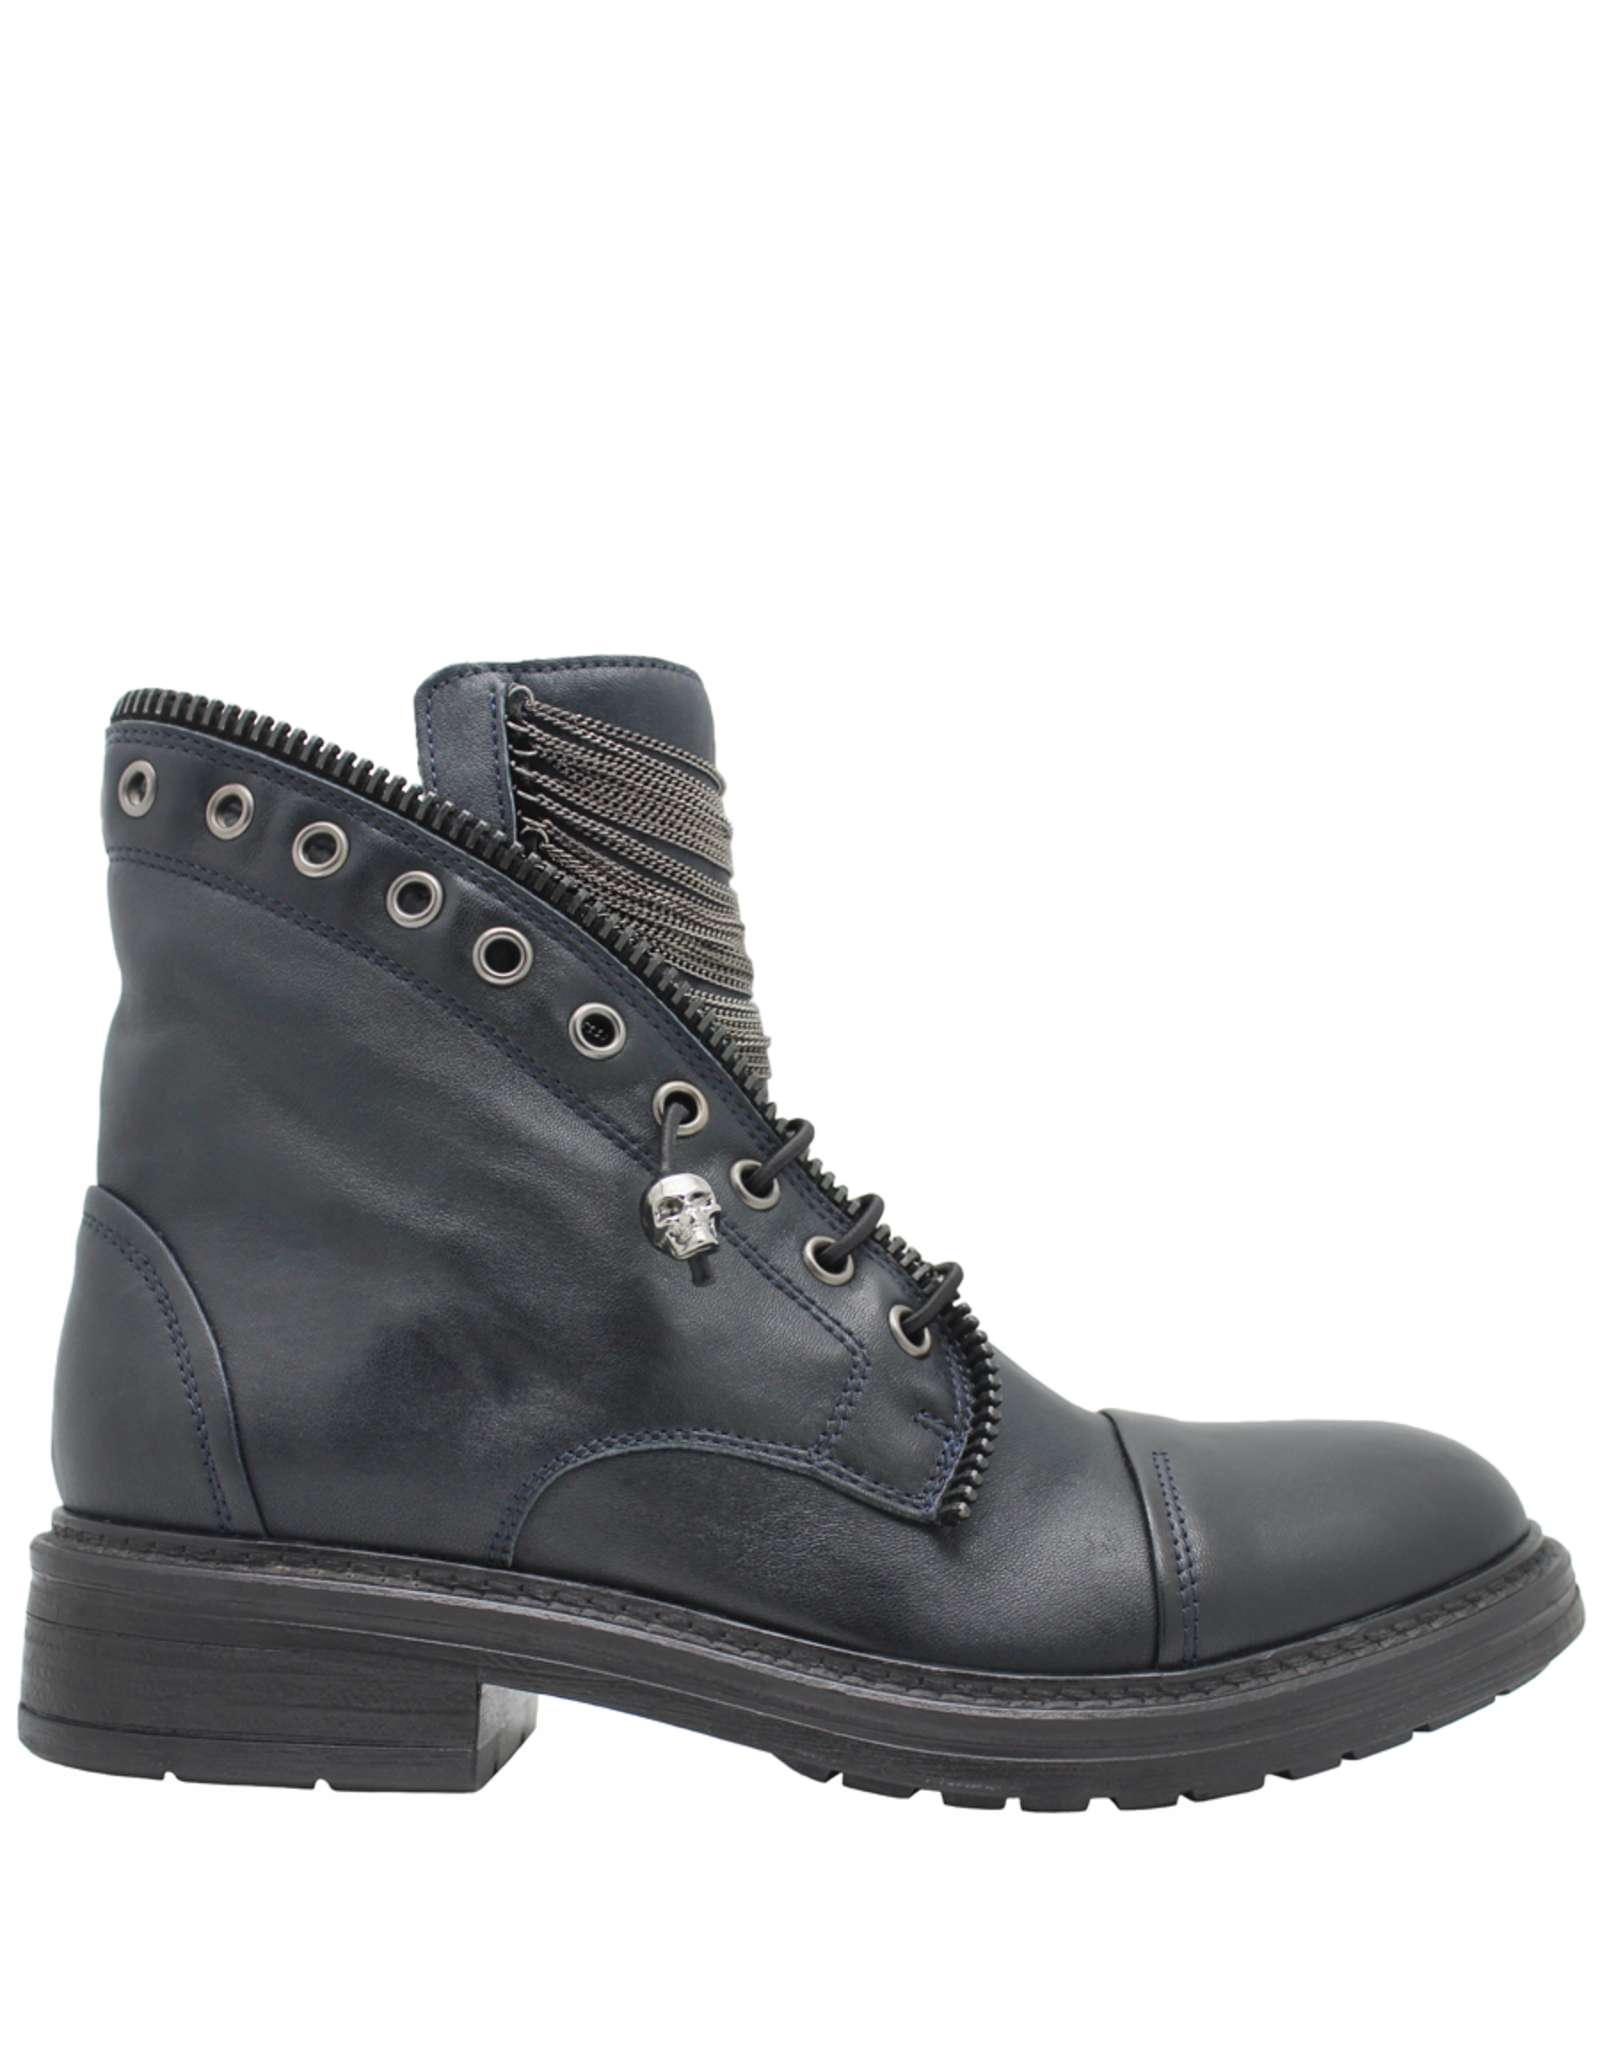 Now Now Blue Chain Detail Pull On Boot 7024